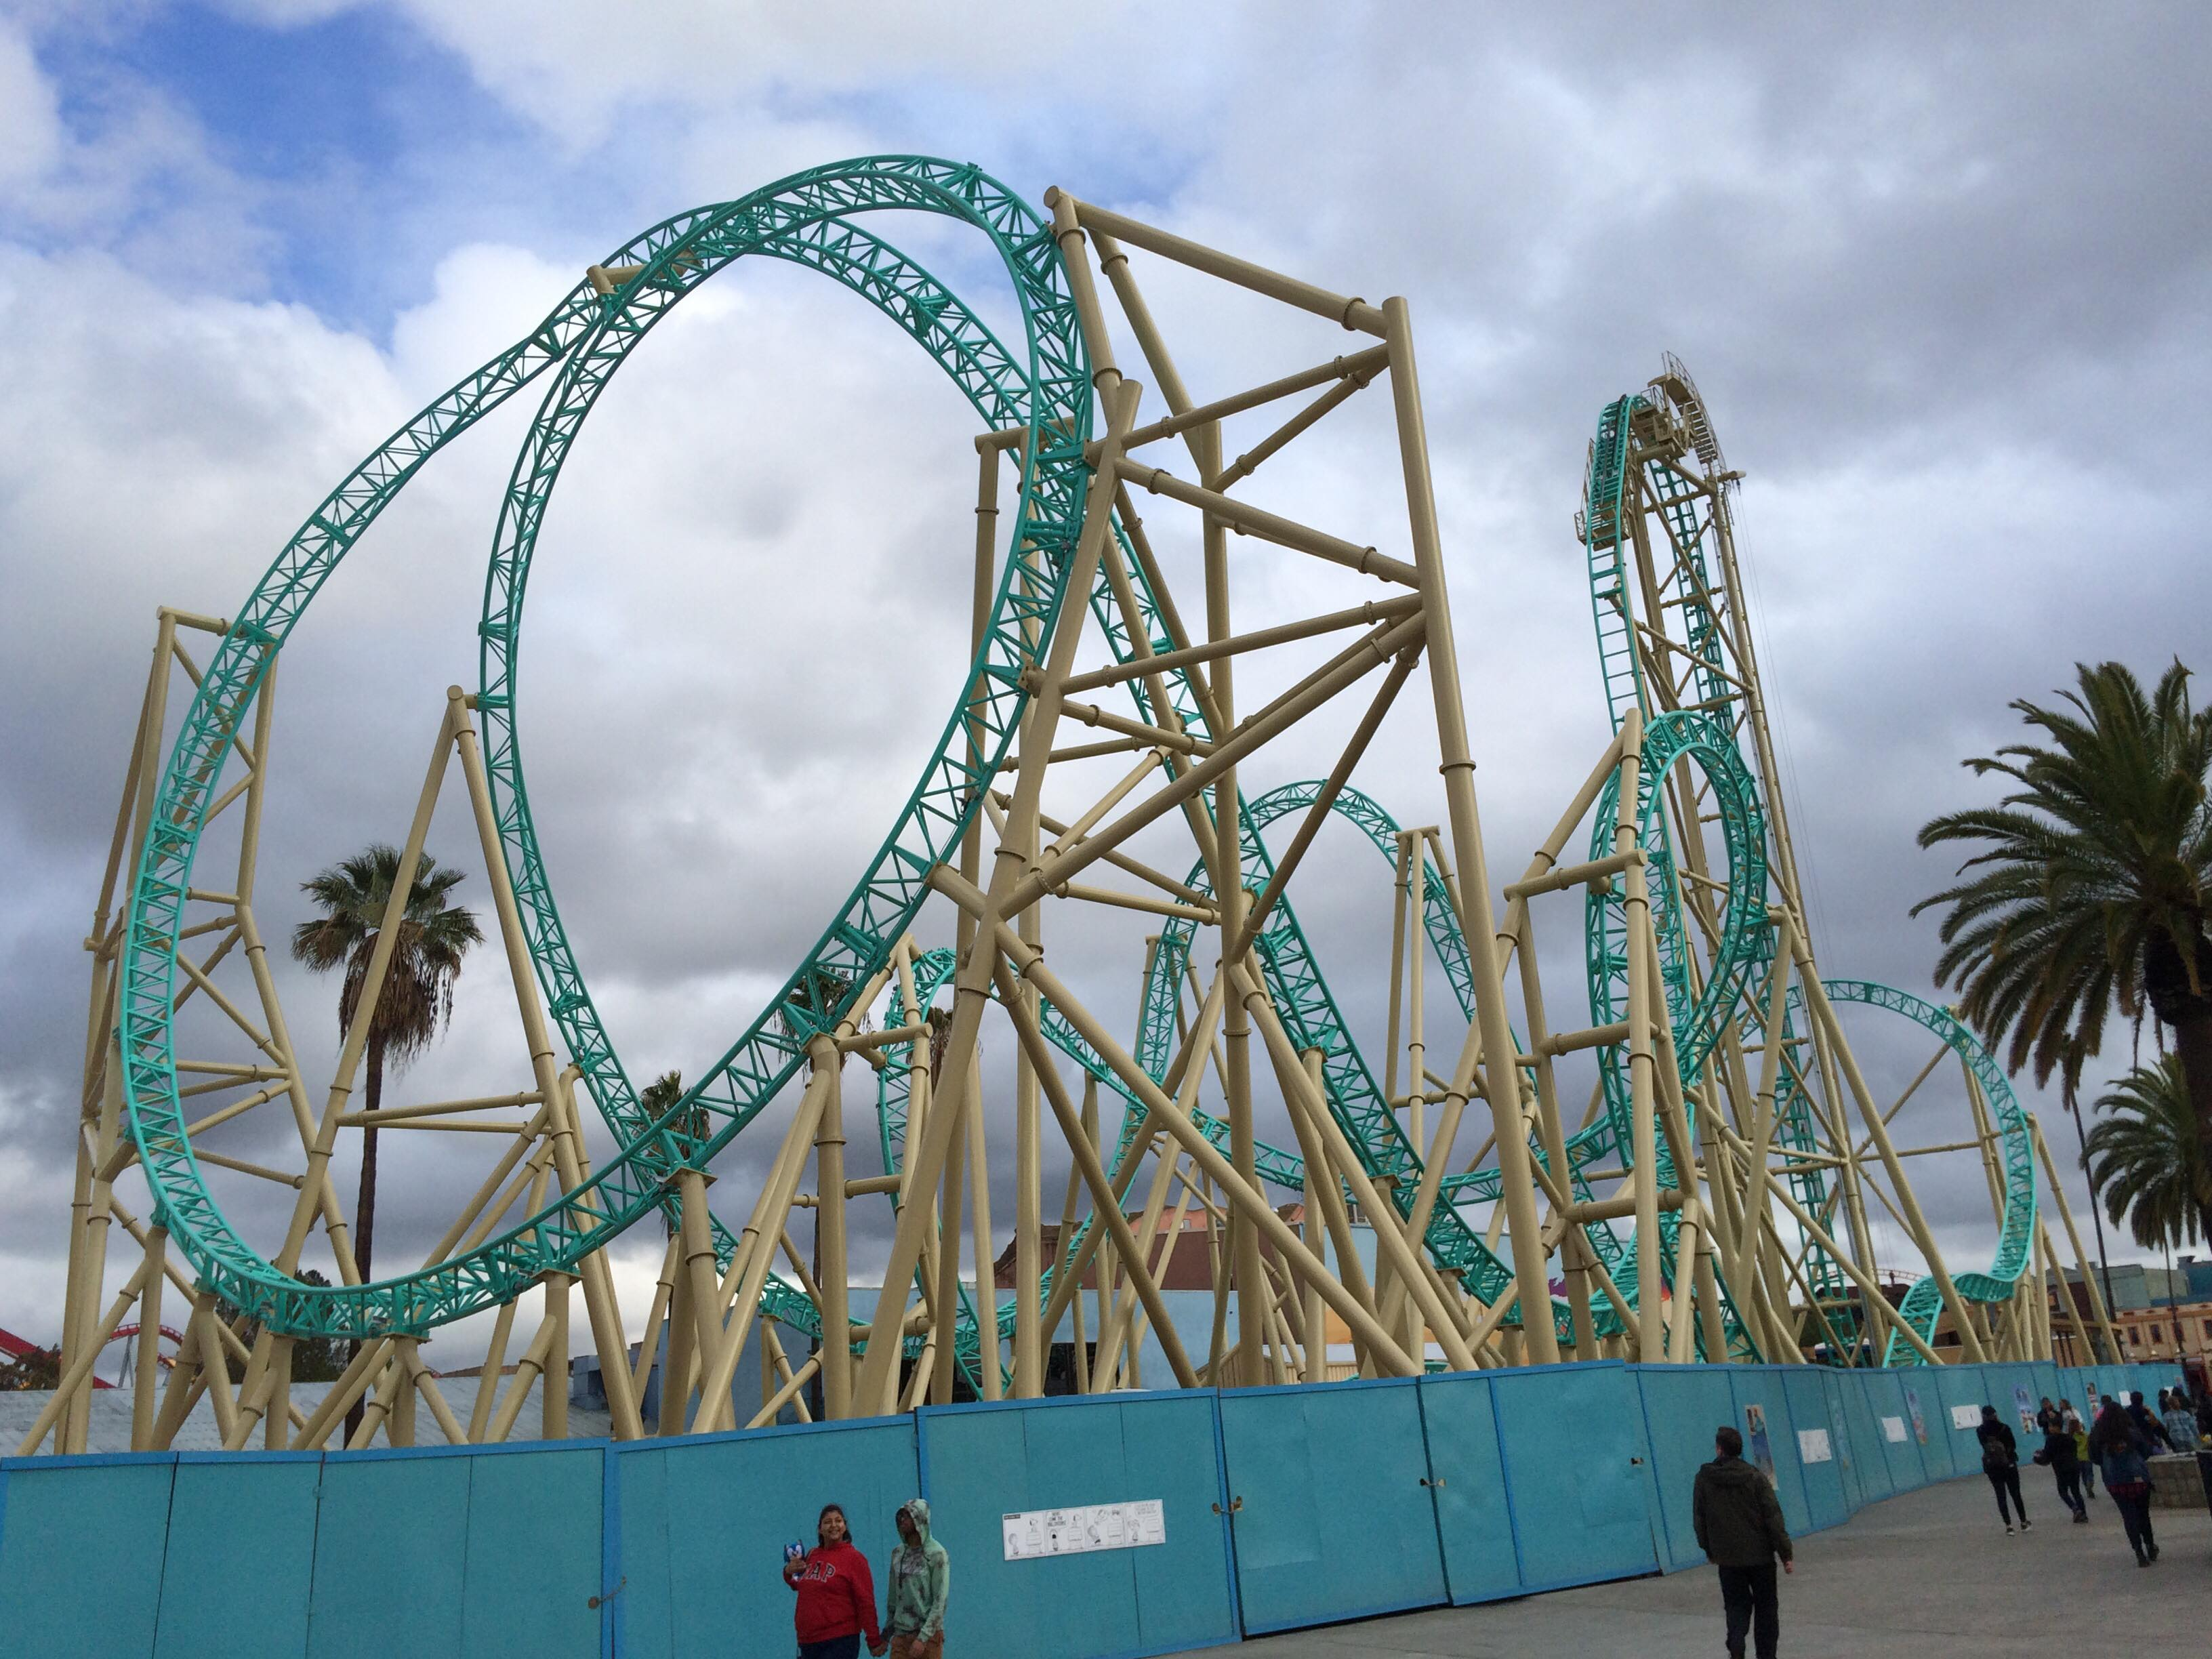 Xcelerator - Review of the Knott's Berry Farm Coaster |Knotts Berry Farm Coasters